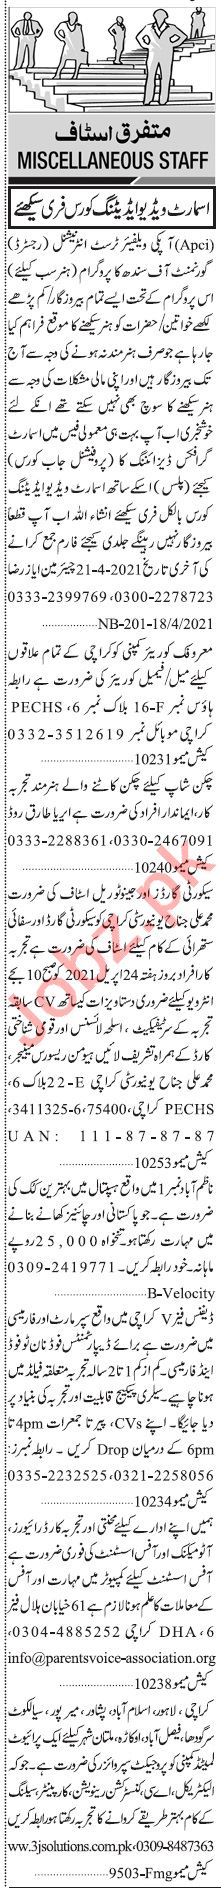 Jang Sunday Classified Ads 18 April 2021 for General Staff